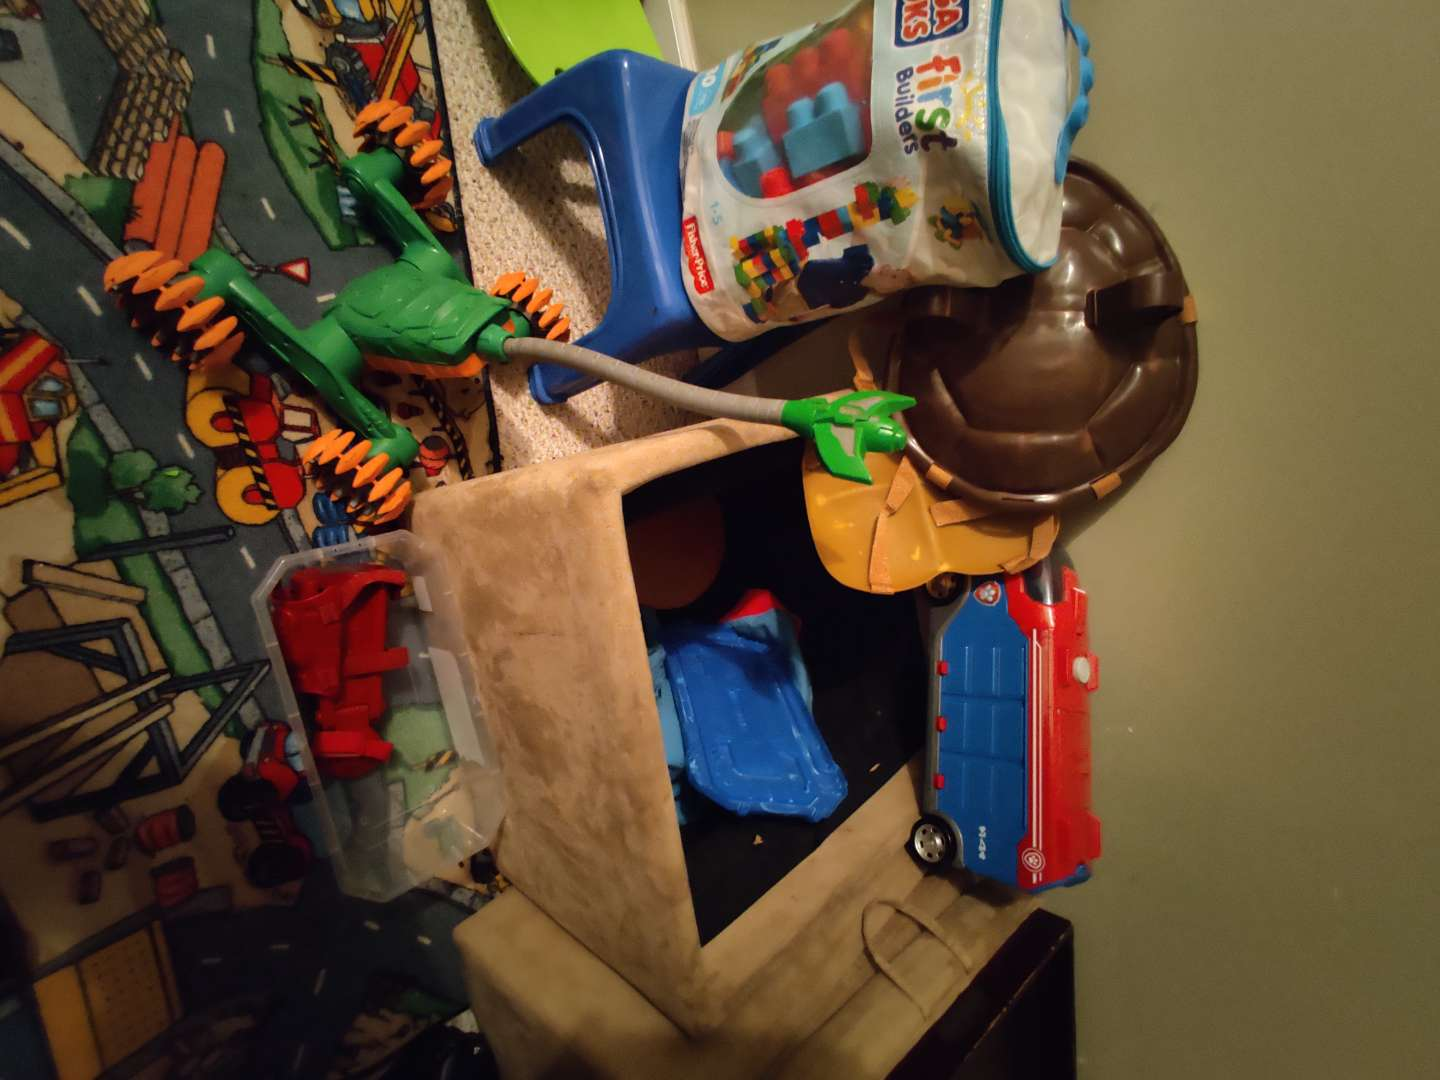 282 lot of miscellaneous toys Legos and more in trunk